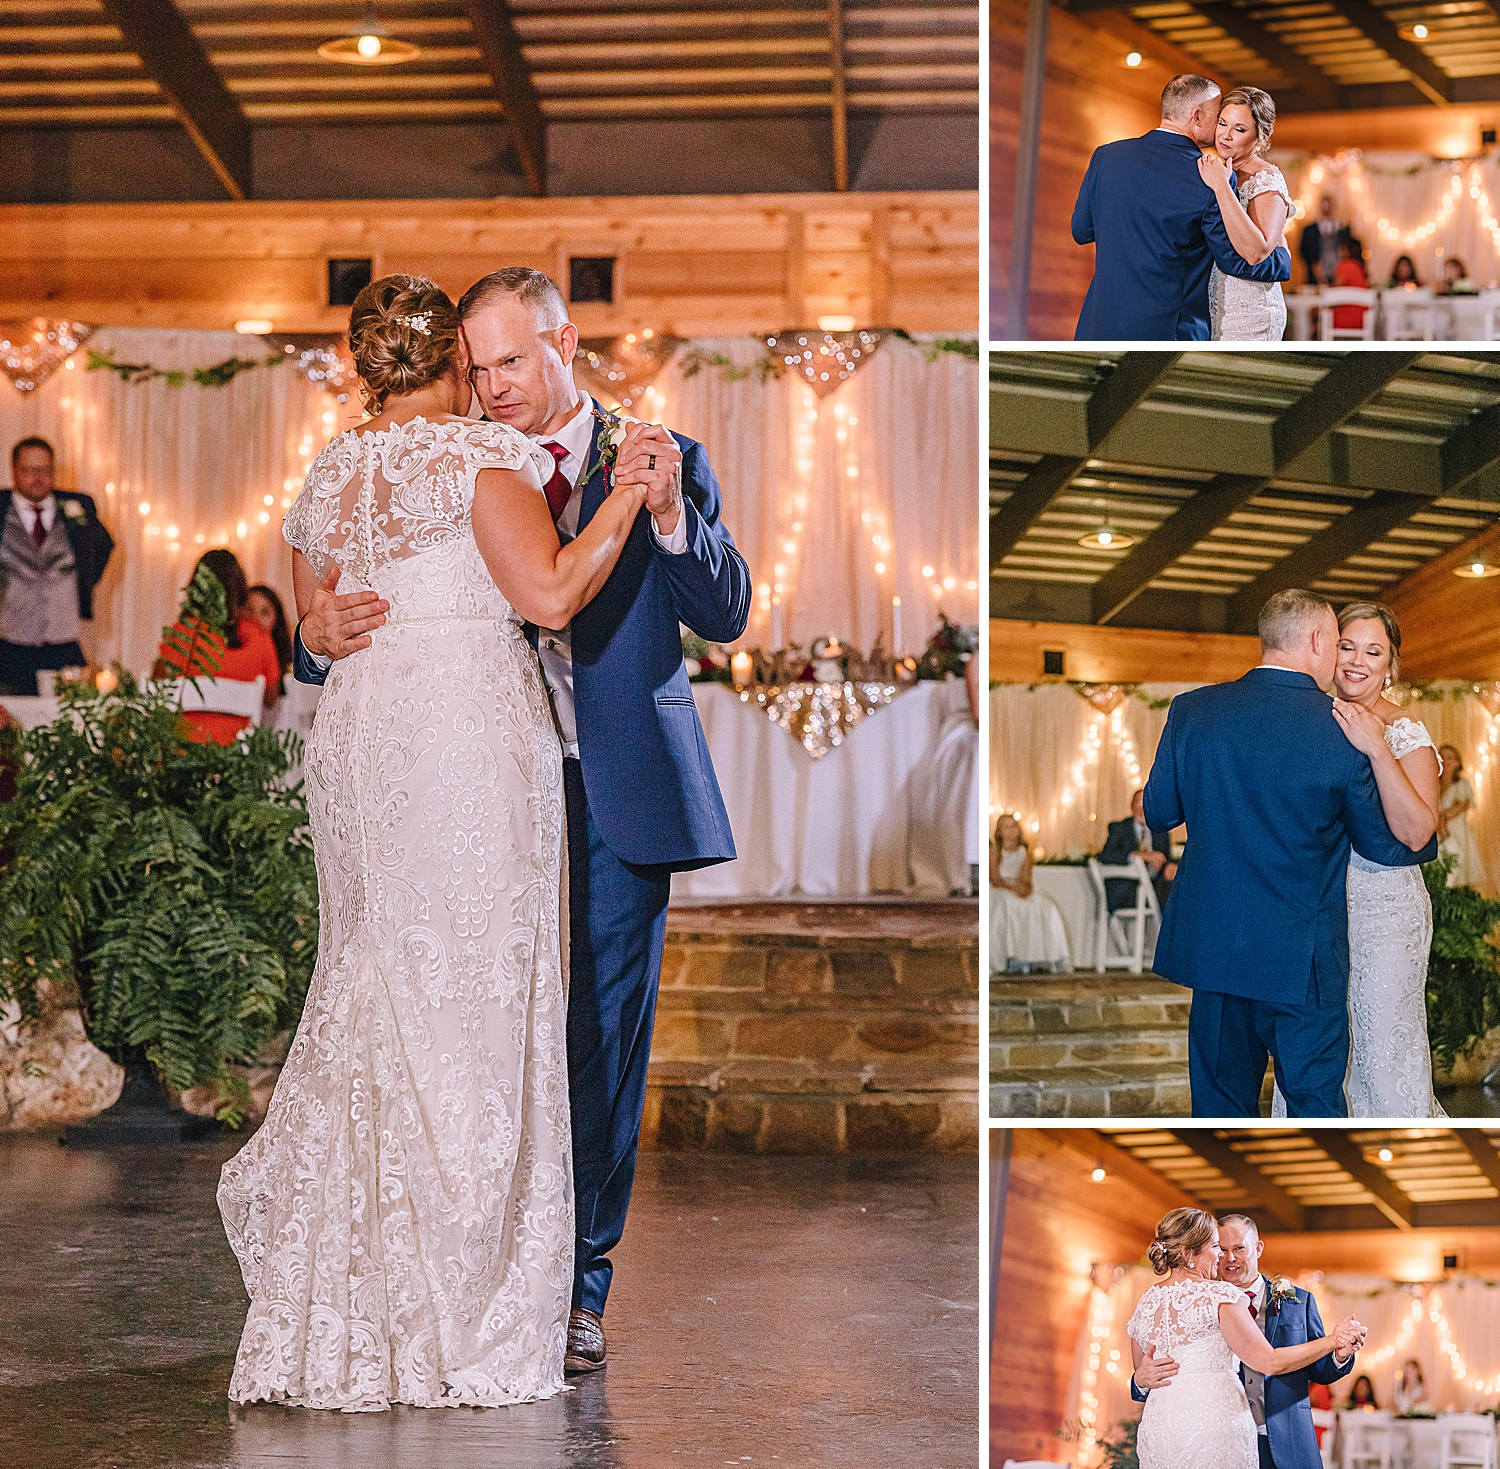 Geronimo-Oaks-Wedding-Venue-Seguin-Texas-Elegant-Navy-Burgundy-Wedding-Carly-Barton-Photography_0077.jpg